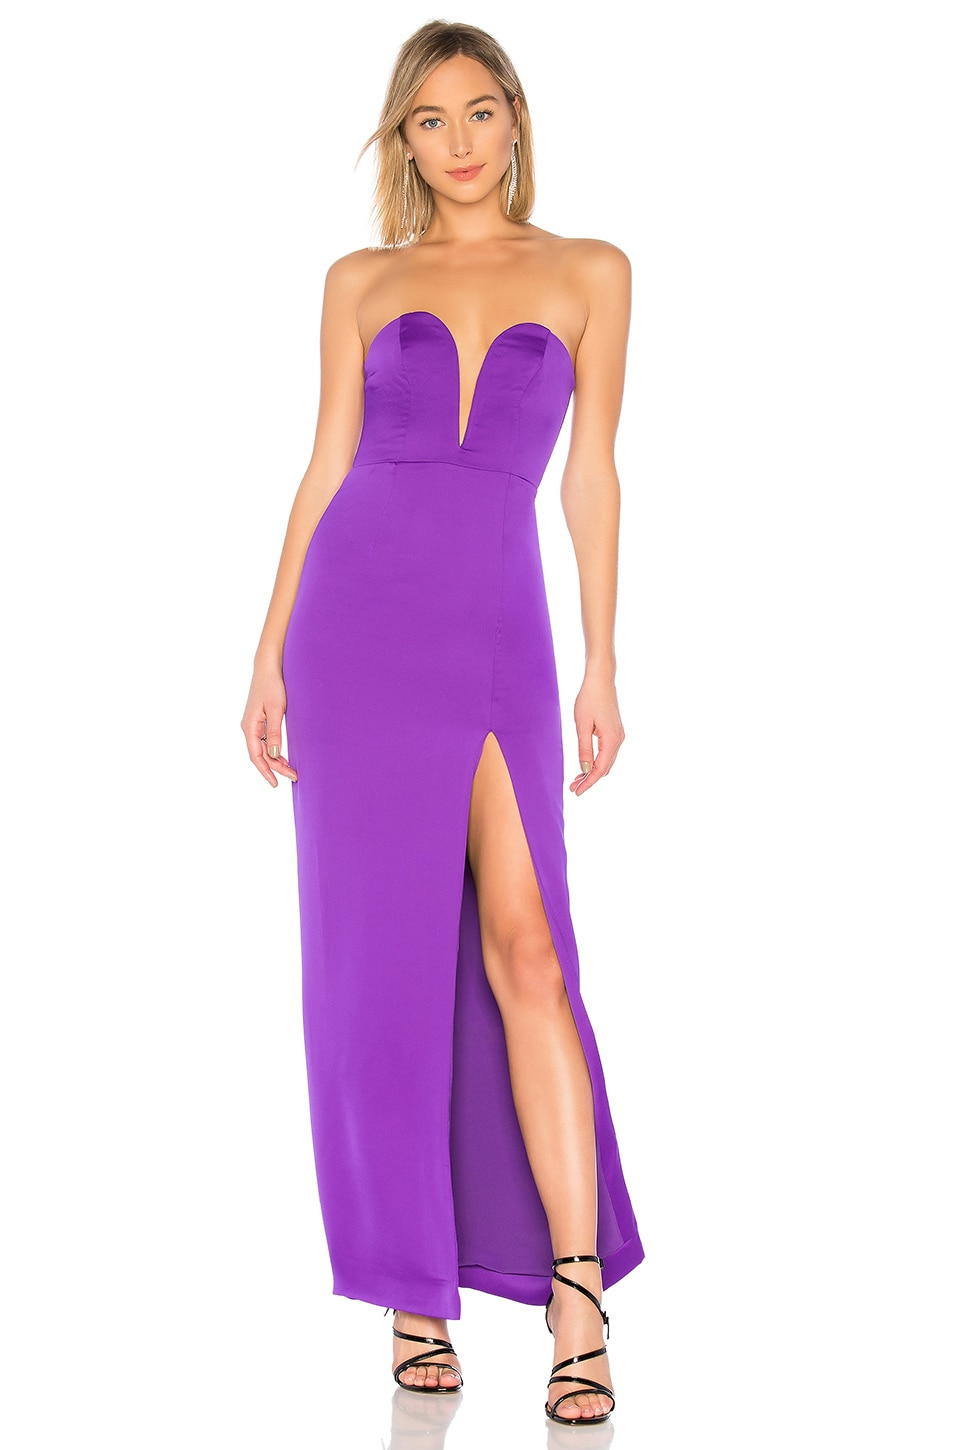 NBD Sawyer Gown in Ultra Violet